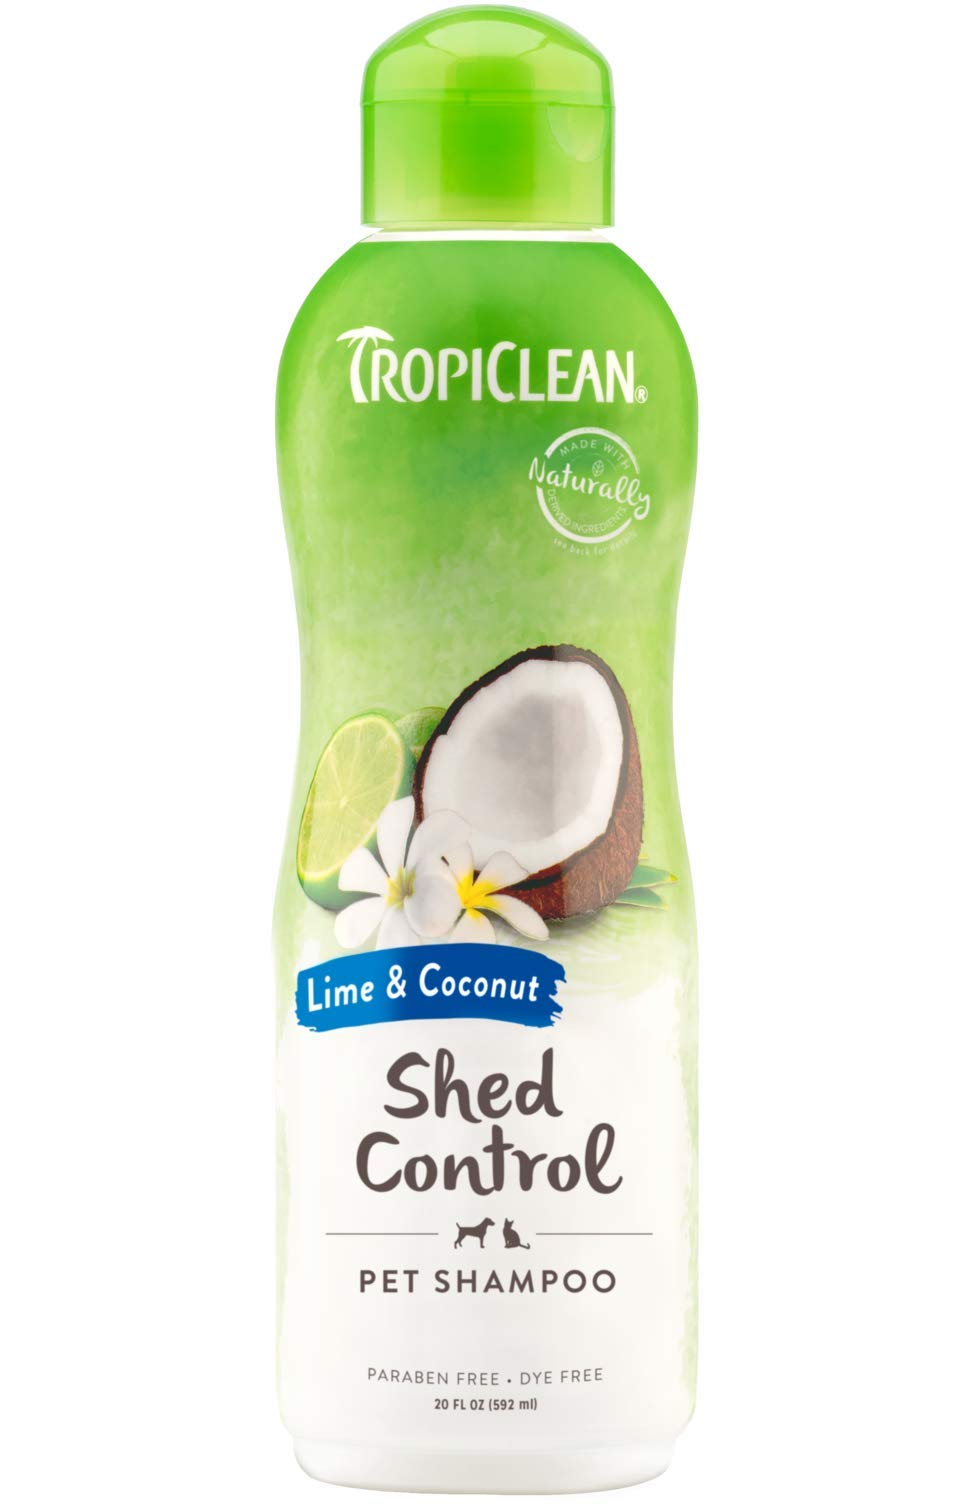 TropiClean Lime and Coconut Shed Control Shampoo for Pets, 20oz, Made in USA